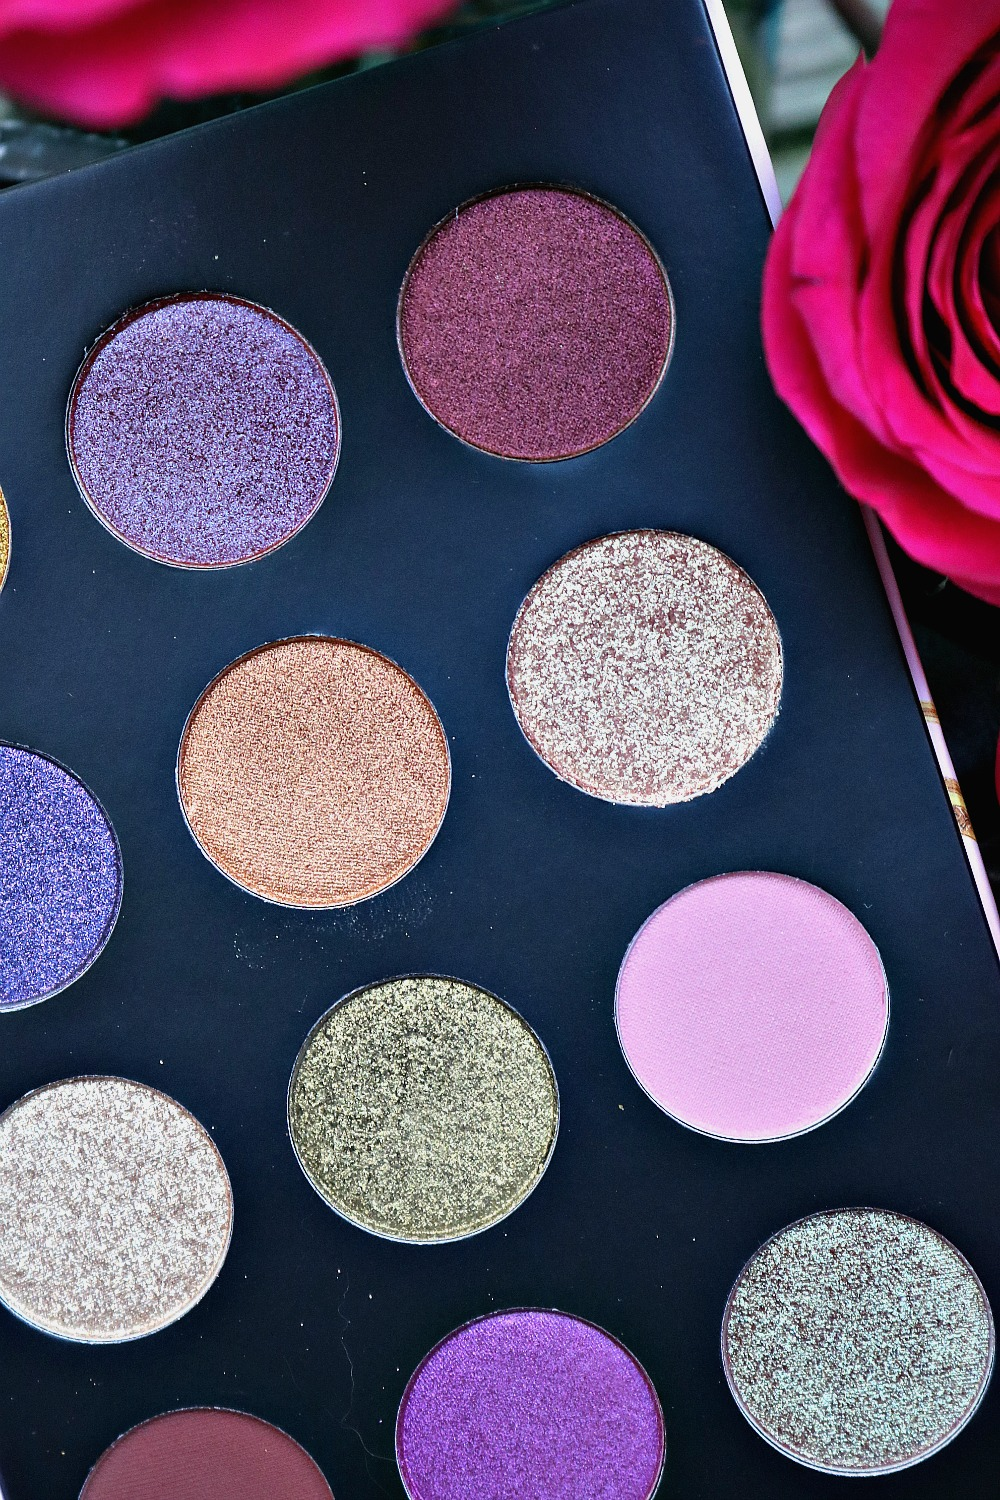 Pat McGrath Celestial Divinity Palette from the Holiday 2020 collection I Dreaminlace.com #holiday2020 #makeupblog #makeupcommunity #eyeshadow